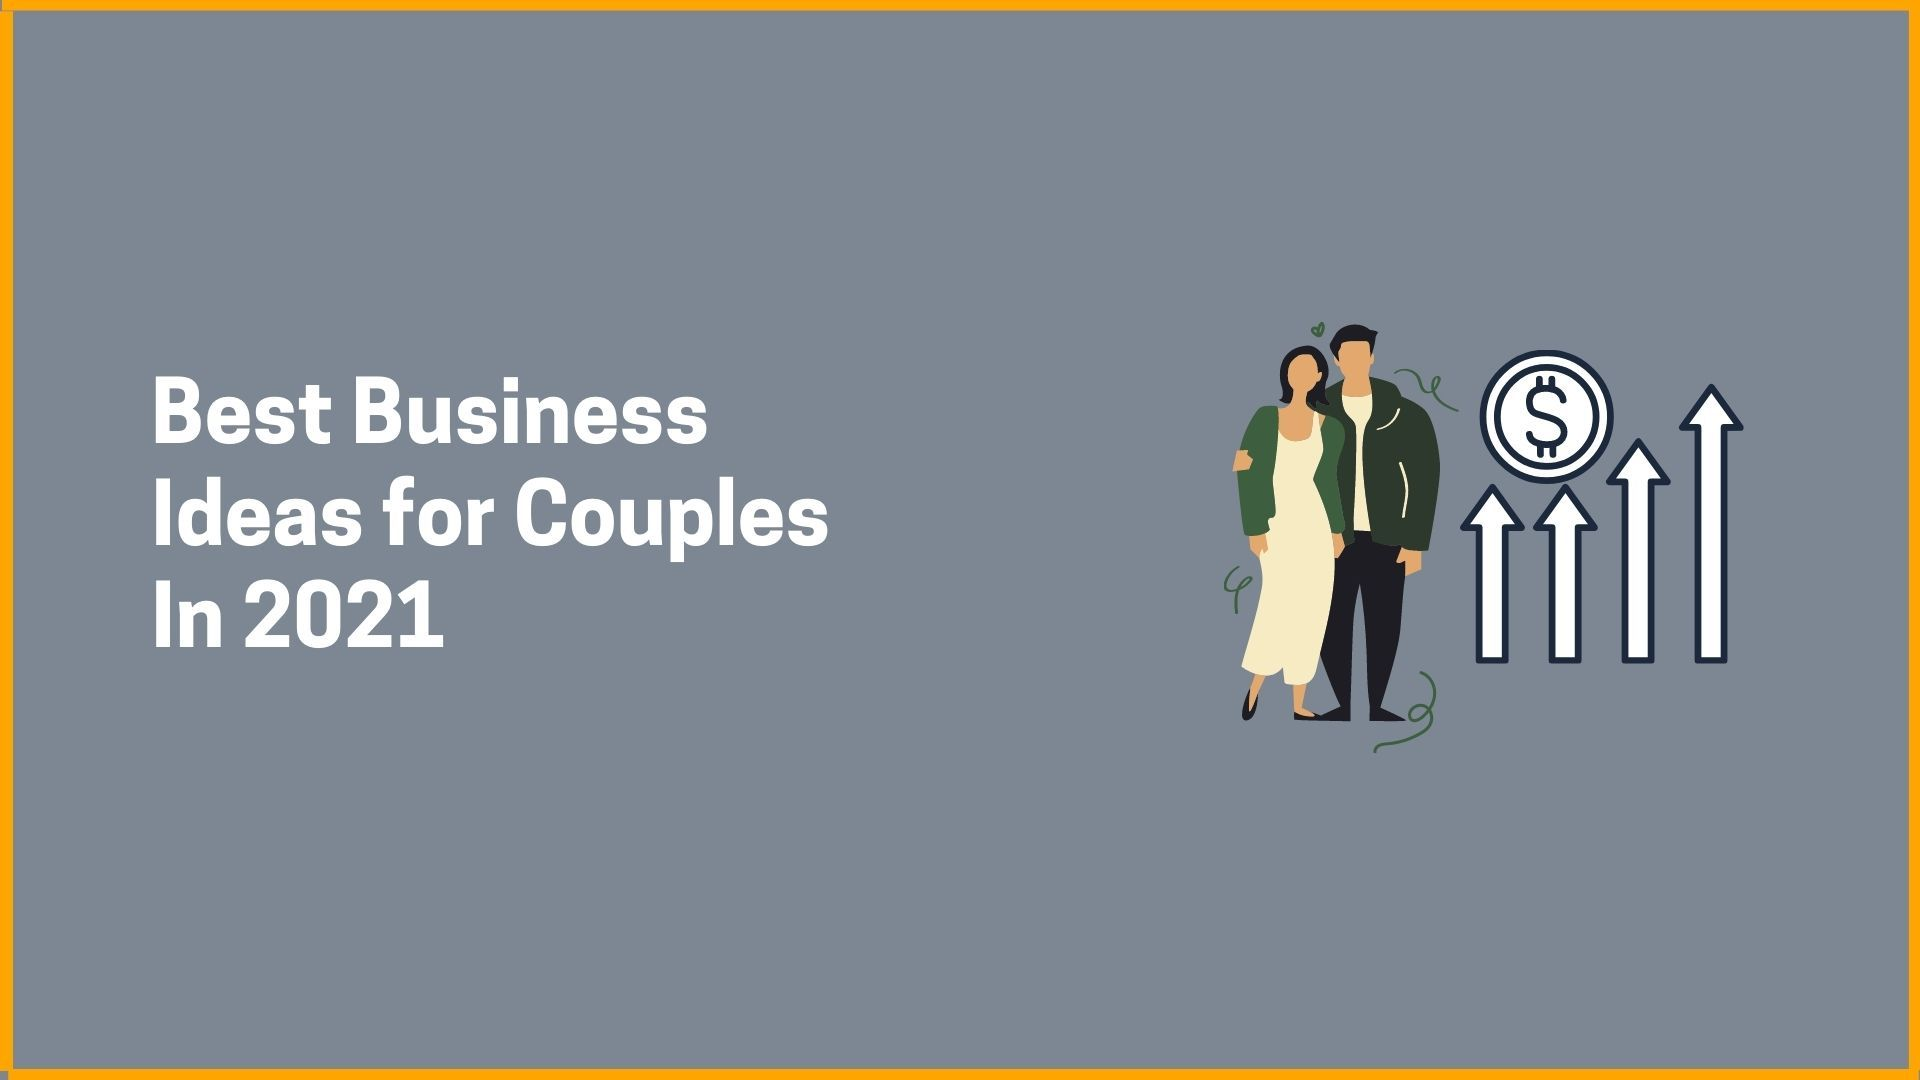 Best Business Ideas for Couples in 2021